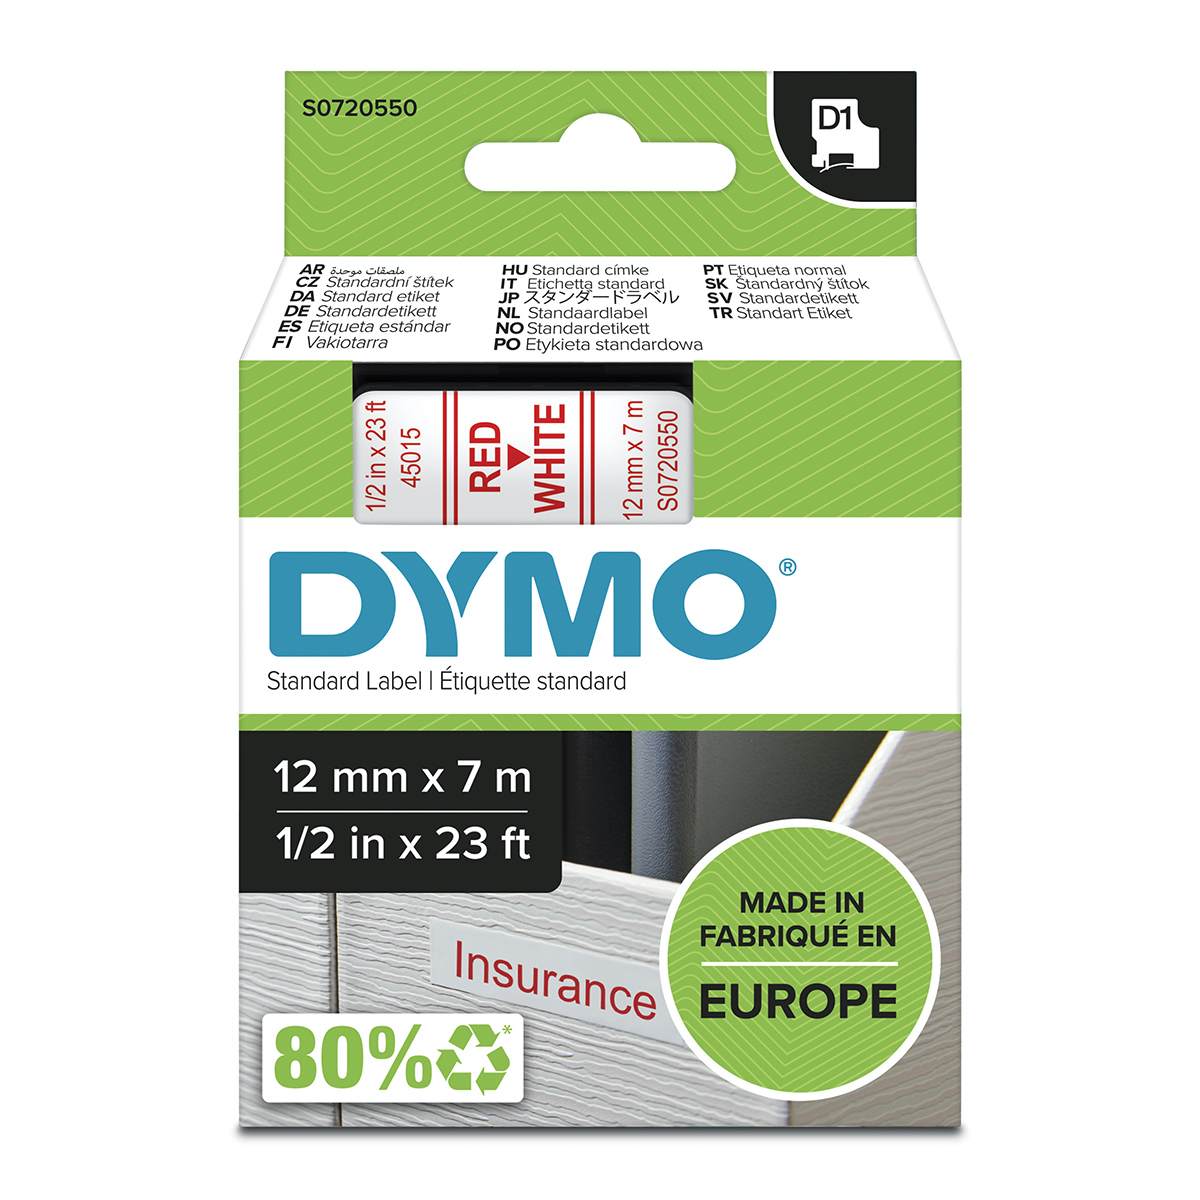 Dymo 45015 D1 12mm x 7m Red on White Tape